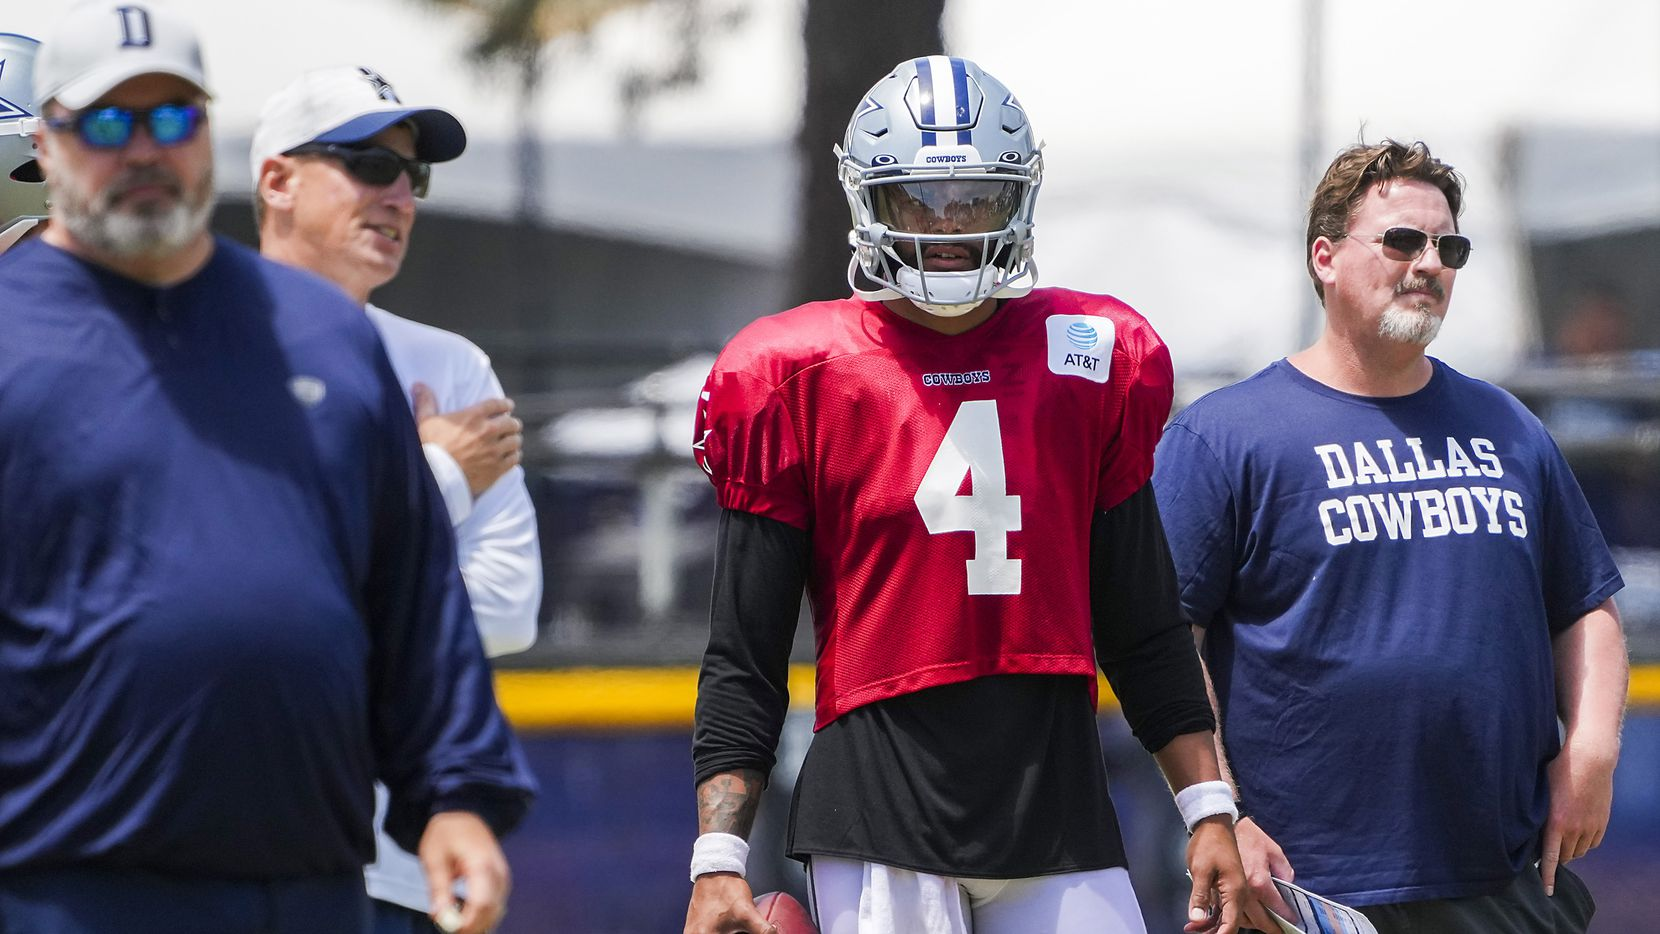 Dallas Cowboys quarterback Dak Prescott (4) watches with, from left head coach Mike McCarthy, quarterbacks coach Doug Nussmeier and consultant Bob McAdoo as he sits out of team drills during a practice at training camp on Wednesday, July 28, 2021, in Oxnard, Calif.